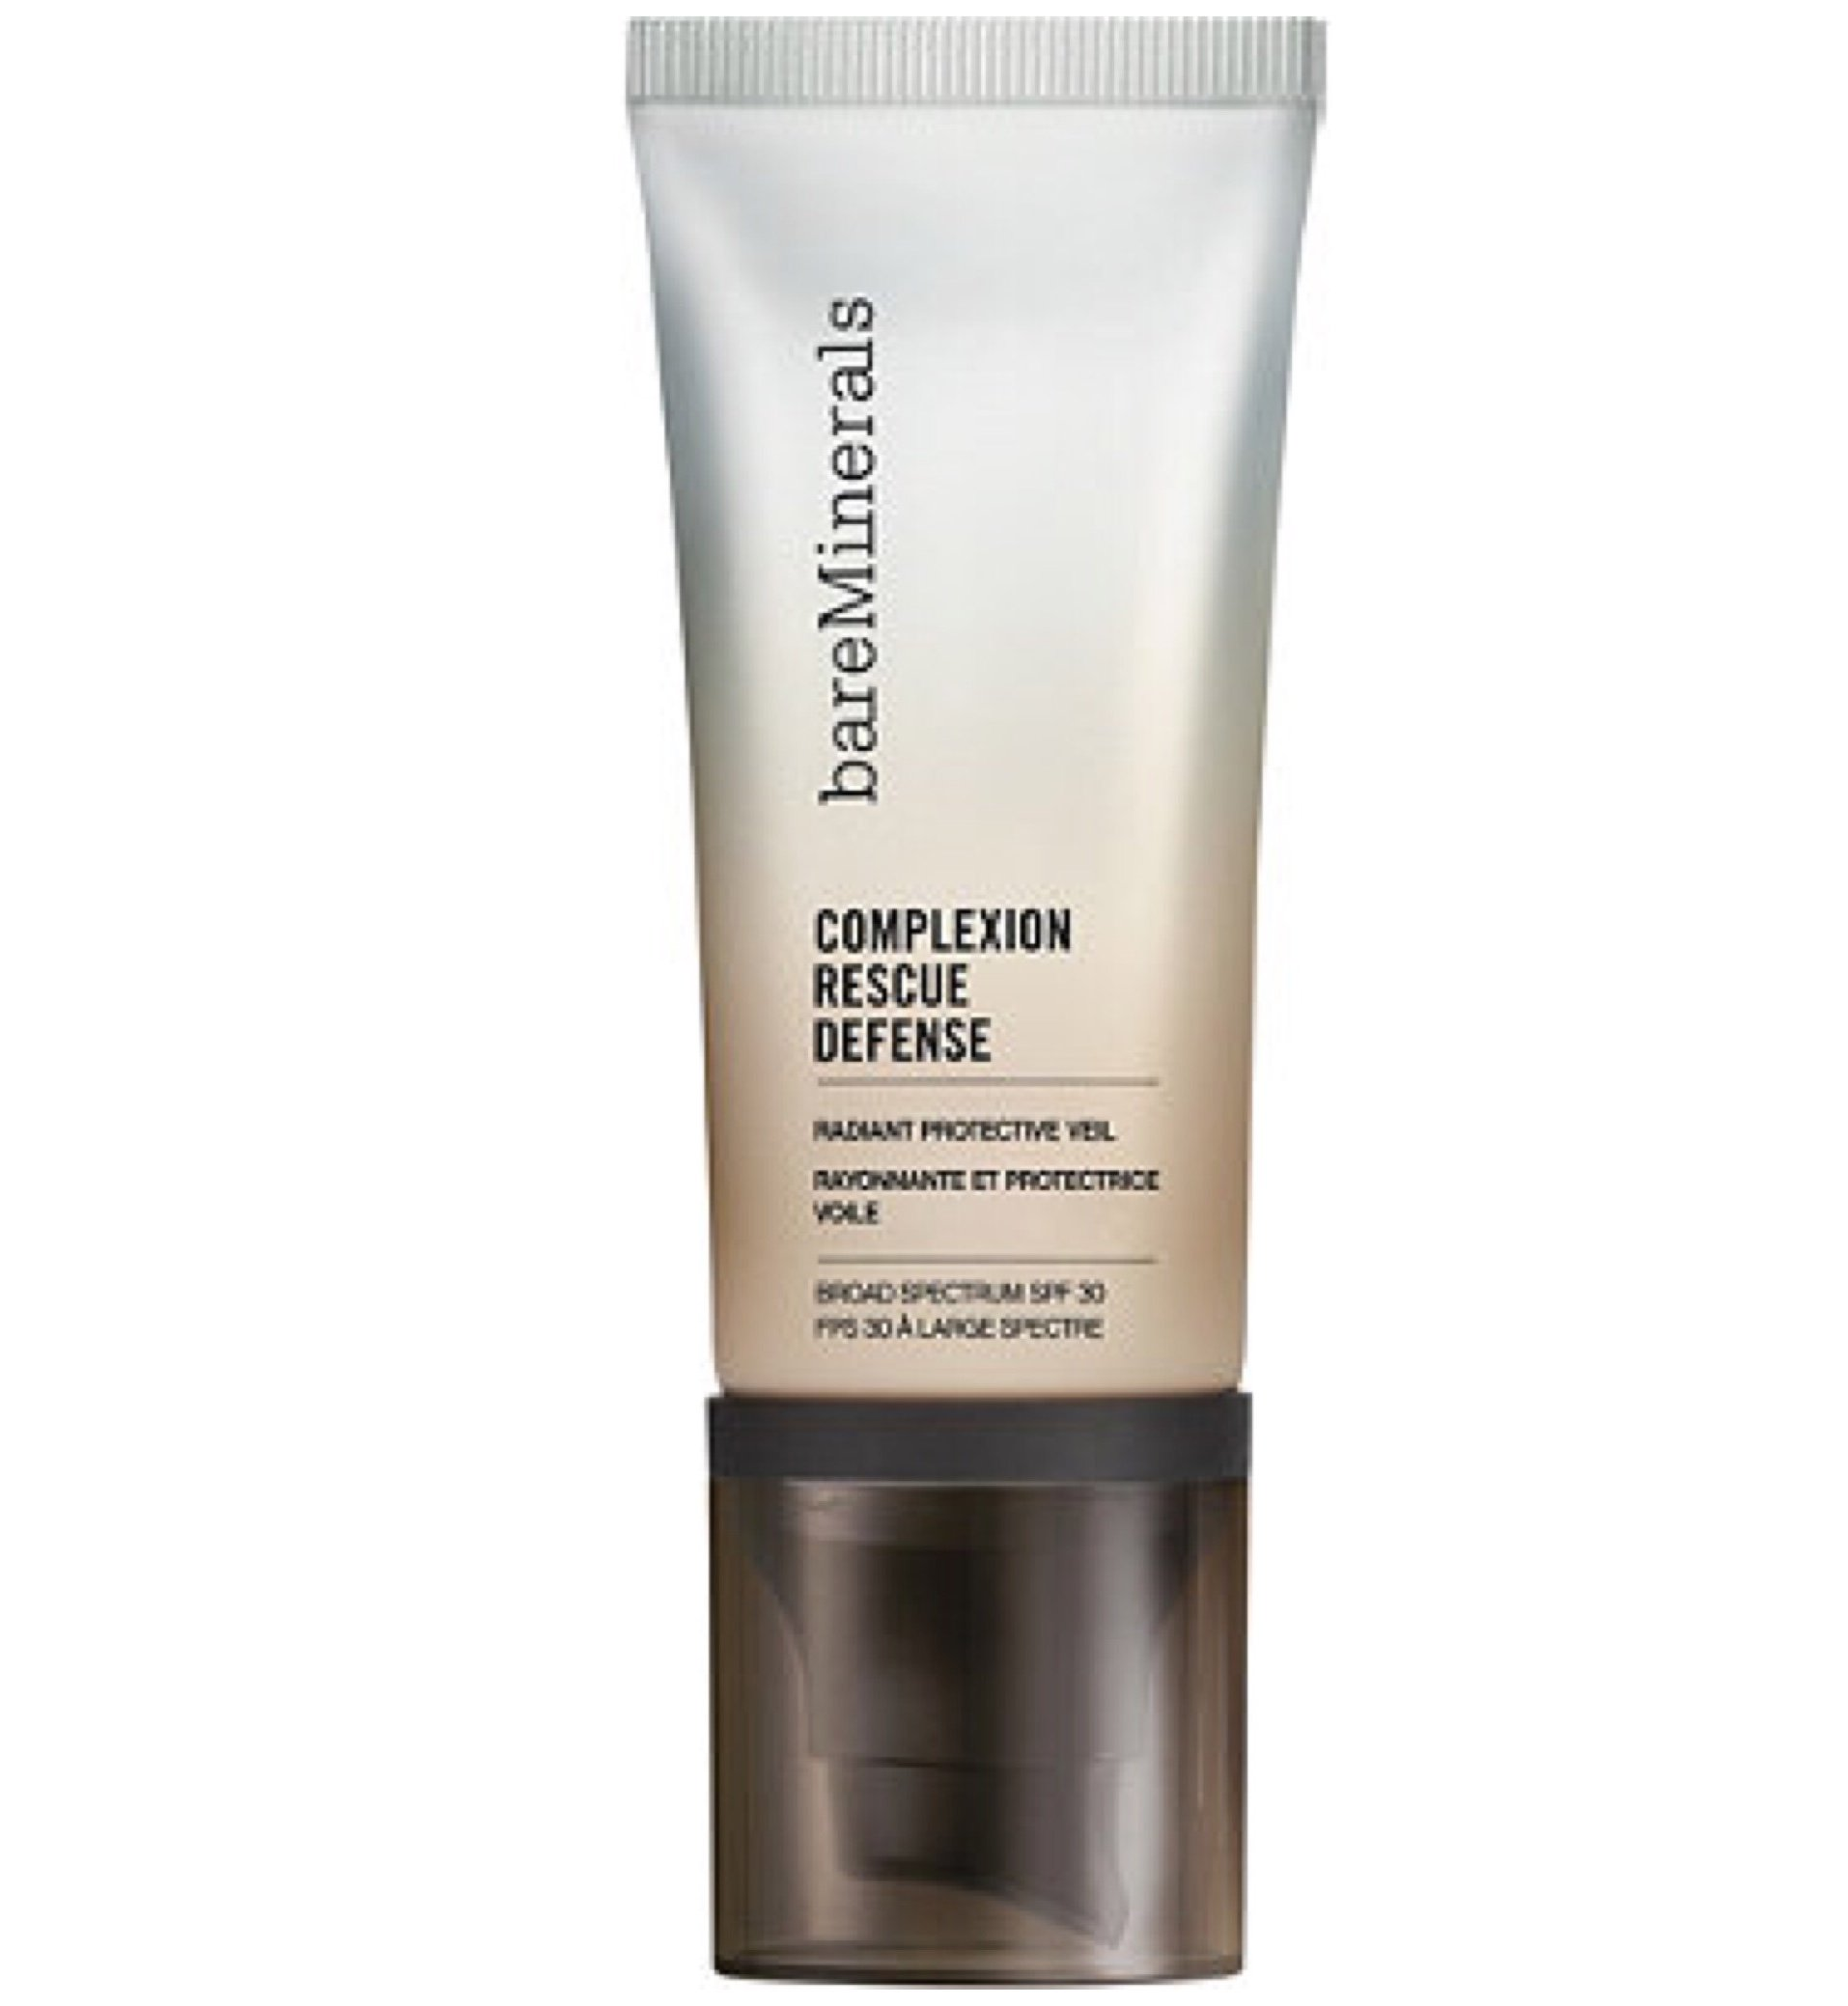 BareMinerals Complexion Rescue Defense Radiant Protective Veil Broad Spectrum SPF 30 by bare Minerals